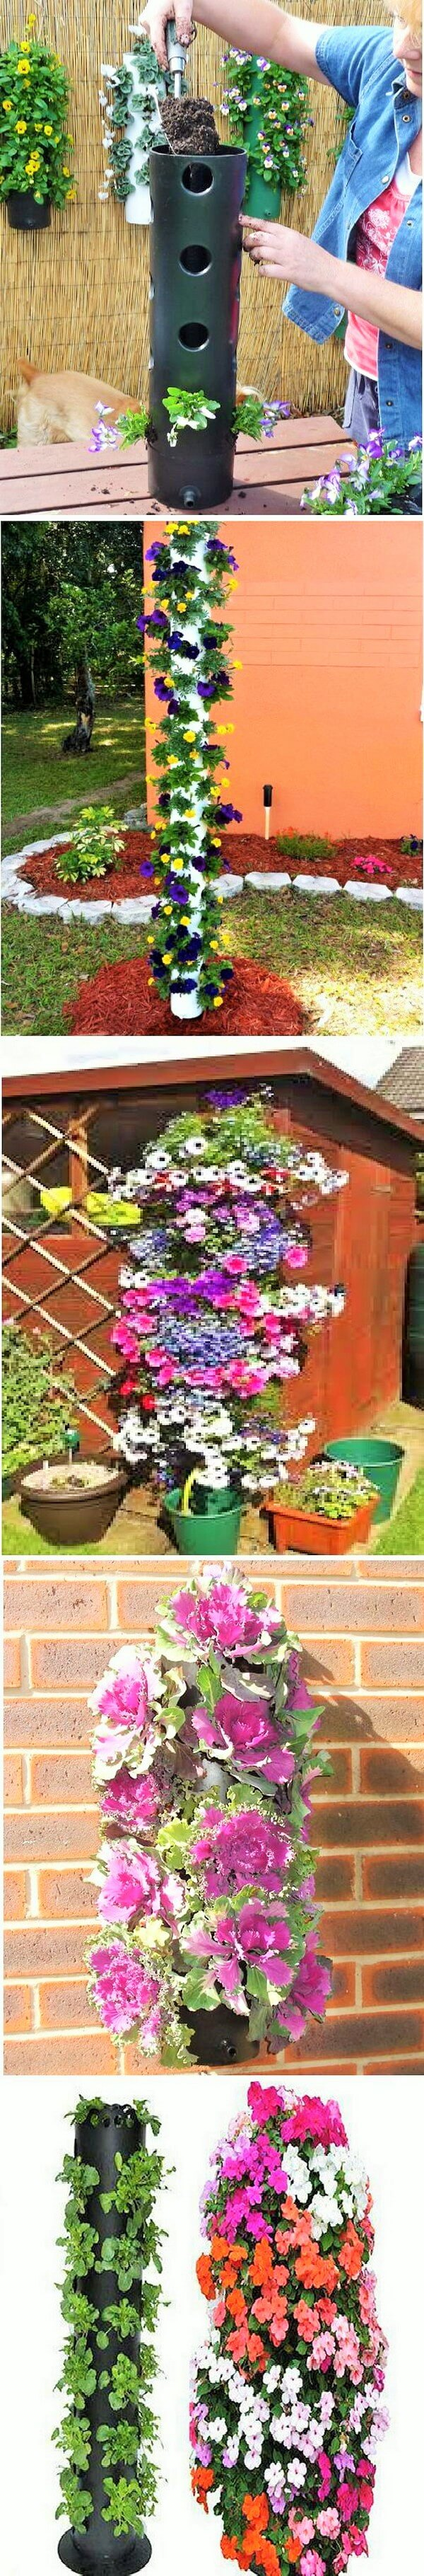 DIY-vertical-garden-ideas-12